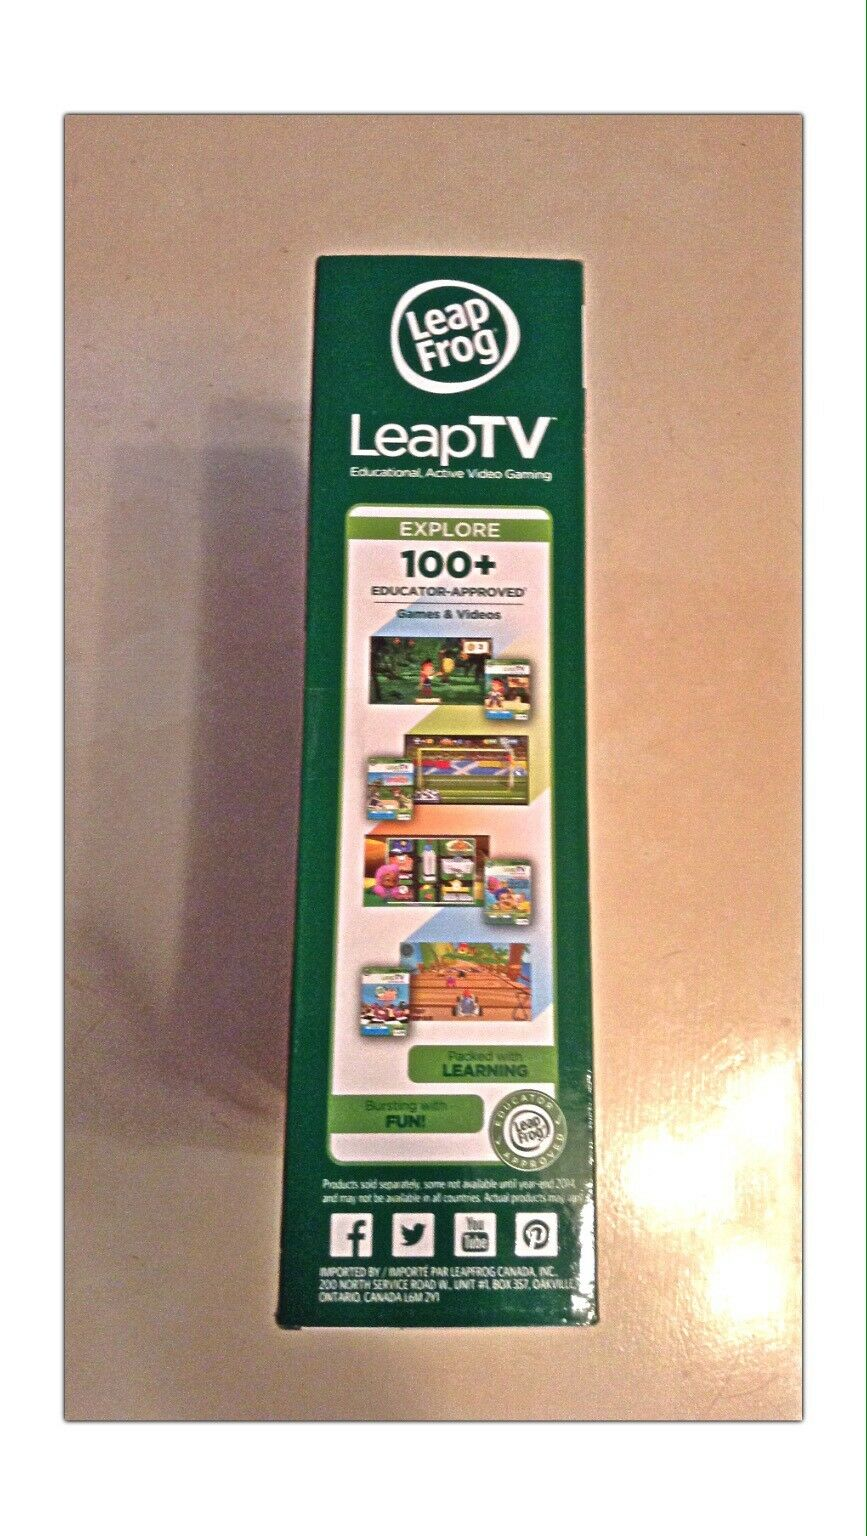 Leap Frog Leapfrog LeapTV Educational Active Video Gaming System System System New In Box c56f7e